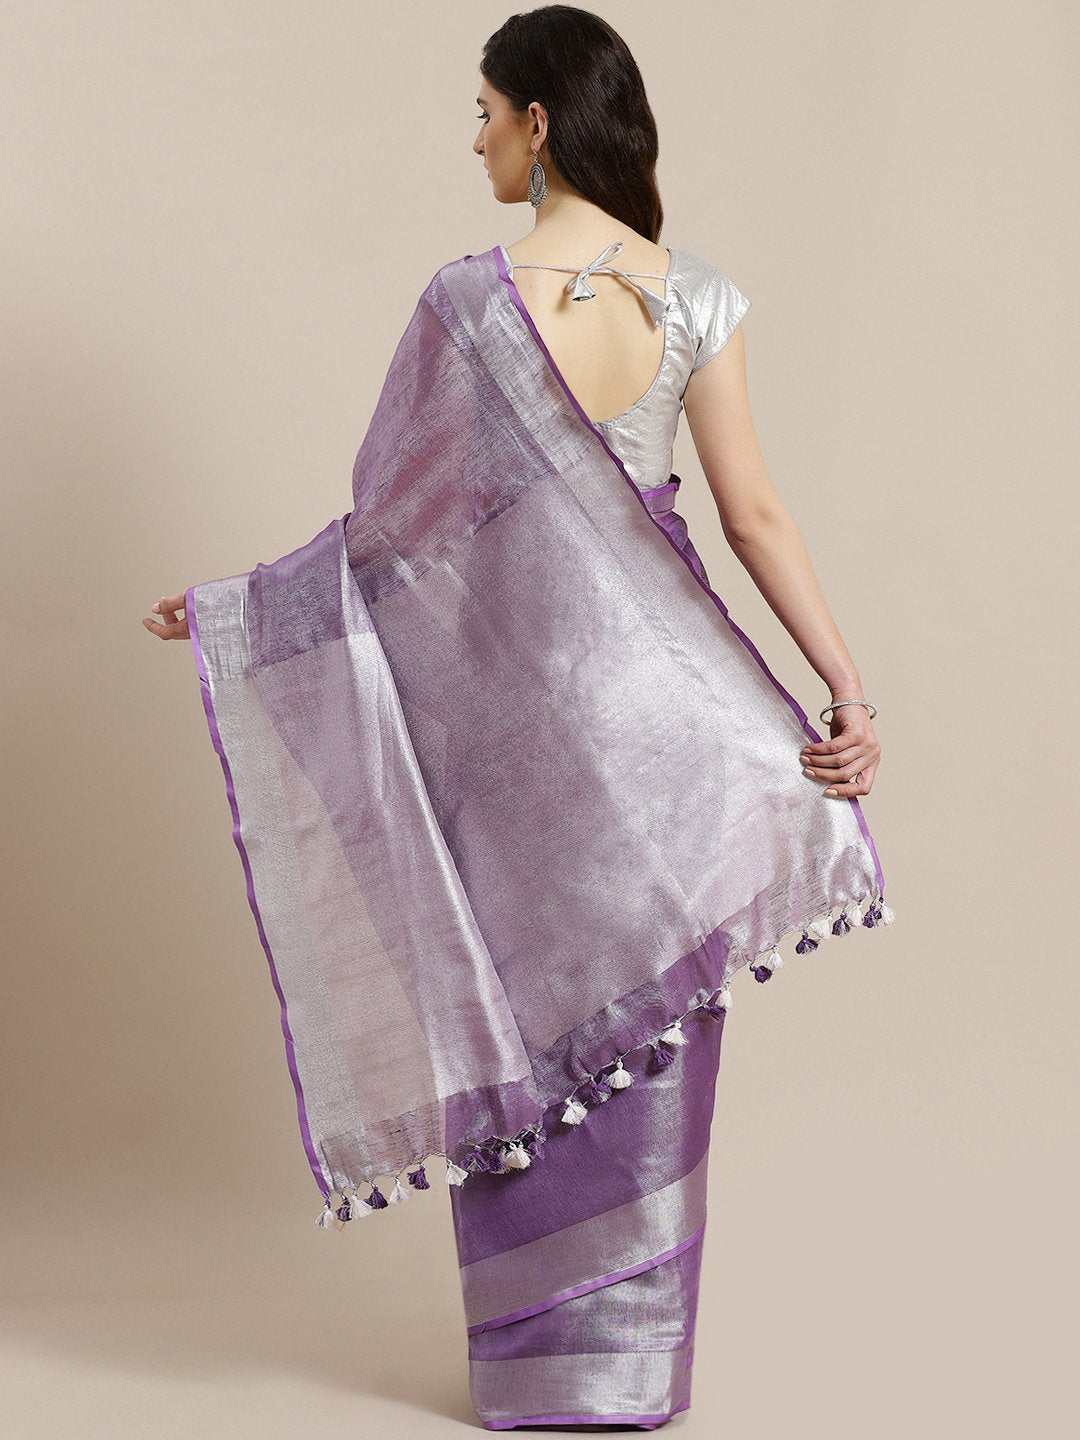 Purple Silver Dual-Tone Handwoven Handcrafted Solid Saree-Saree-Kalakari India-ALBGSA0001-Hand Woven, Sarees, Sustainable Fabrics, Tissue, Traditional Weave-[Linen,Ethnic,wear,Fashionista,Handloom,Handicraft,Indigo,blockprint,block,print,Cotton,Chanderi,Blue, latest,classy,party,bollywood,trendy,summer,style,traditional,formal,elegant,unique,style,hand,block,print, dabu,booti,gift,present,glamorous,affordable,collectible,Sari,Saree,printed, holi, Diwali, birthday, anniversary, sustainable, organ